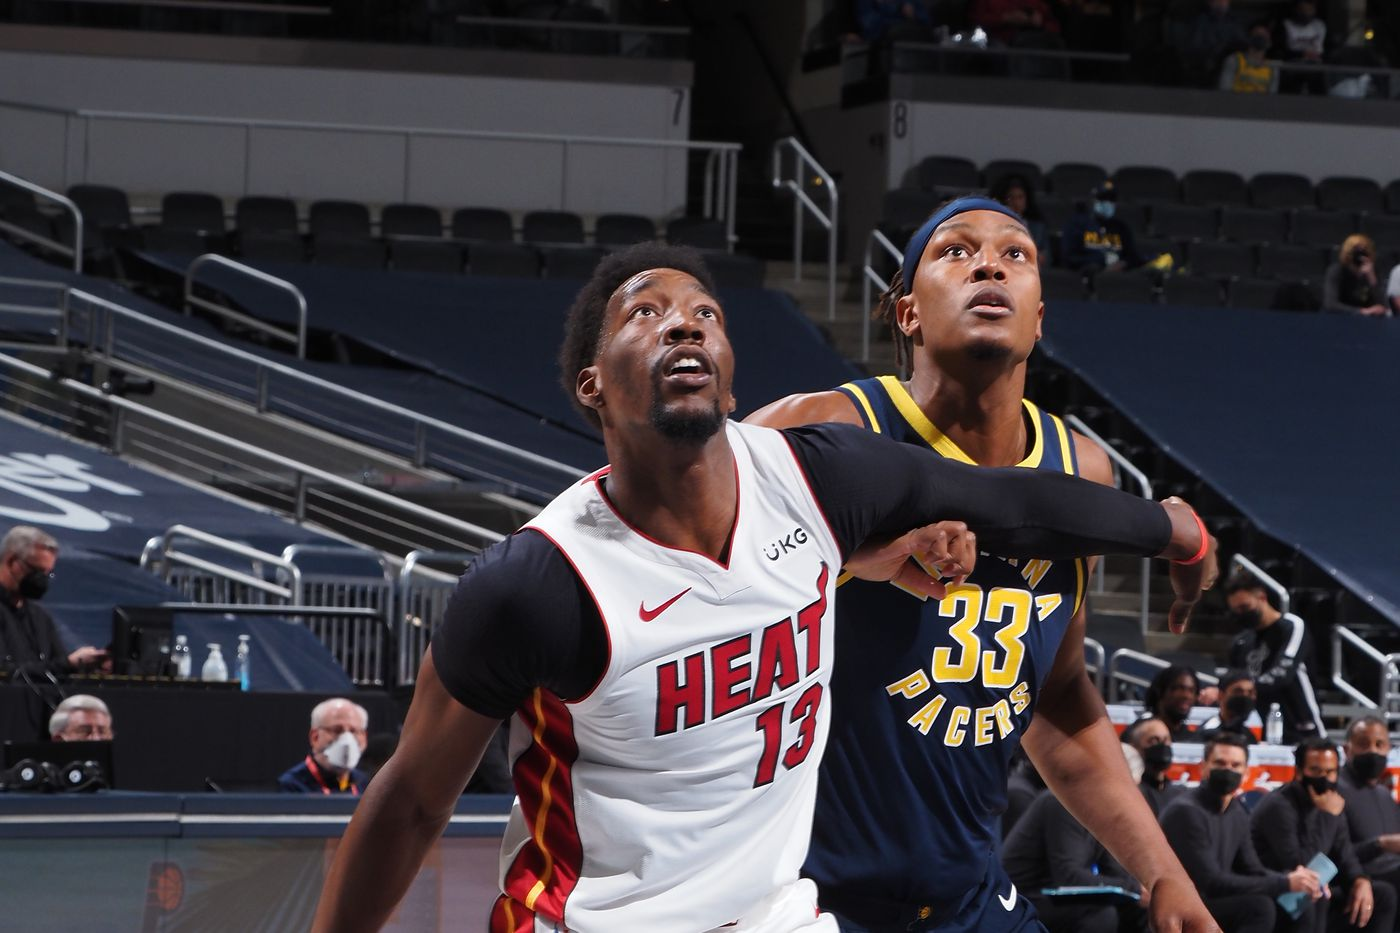 Pacers final score: Pacers serve up fourth quarter collapse in 92-87 loss to Heat - Indy Cornrows